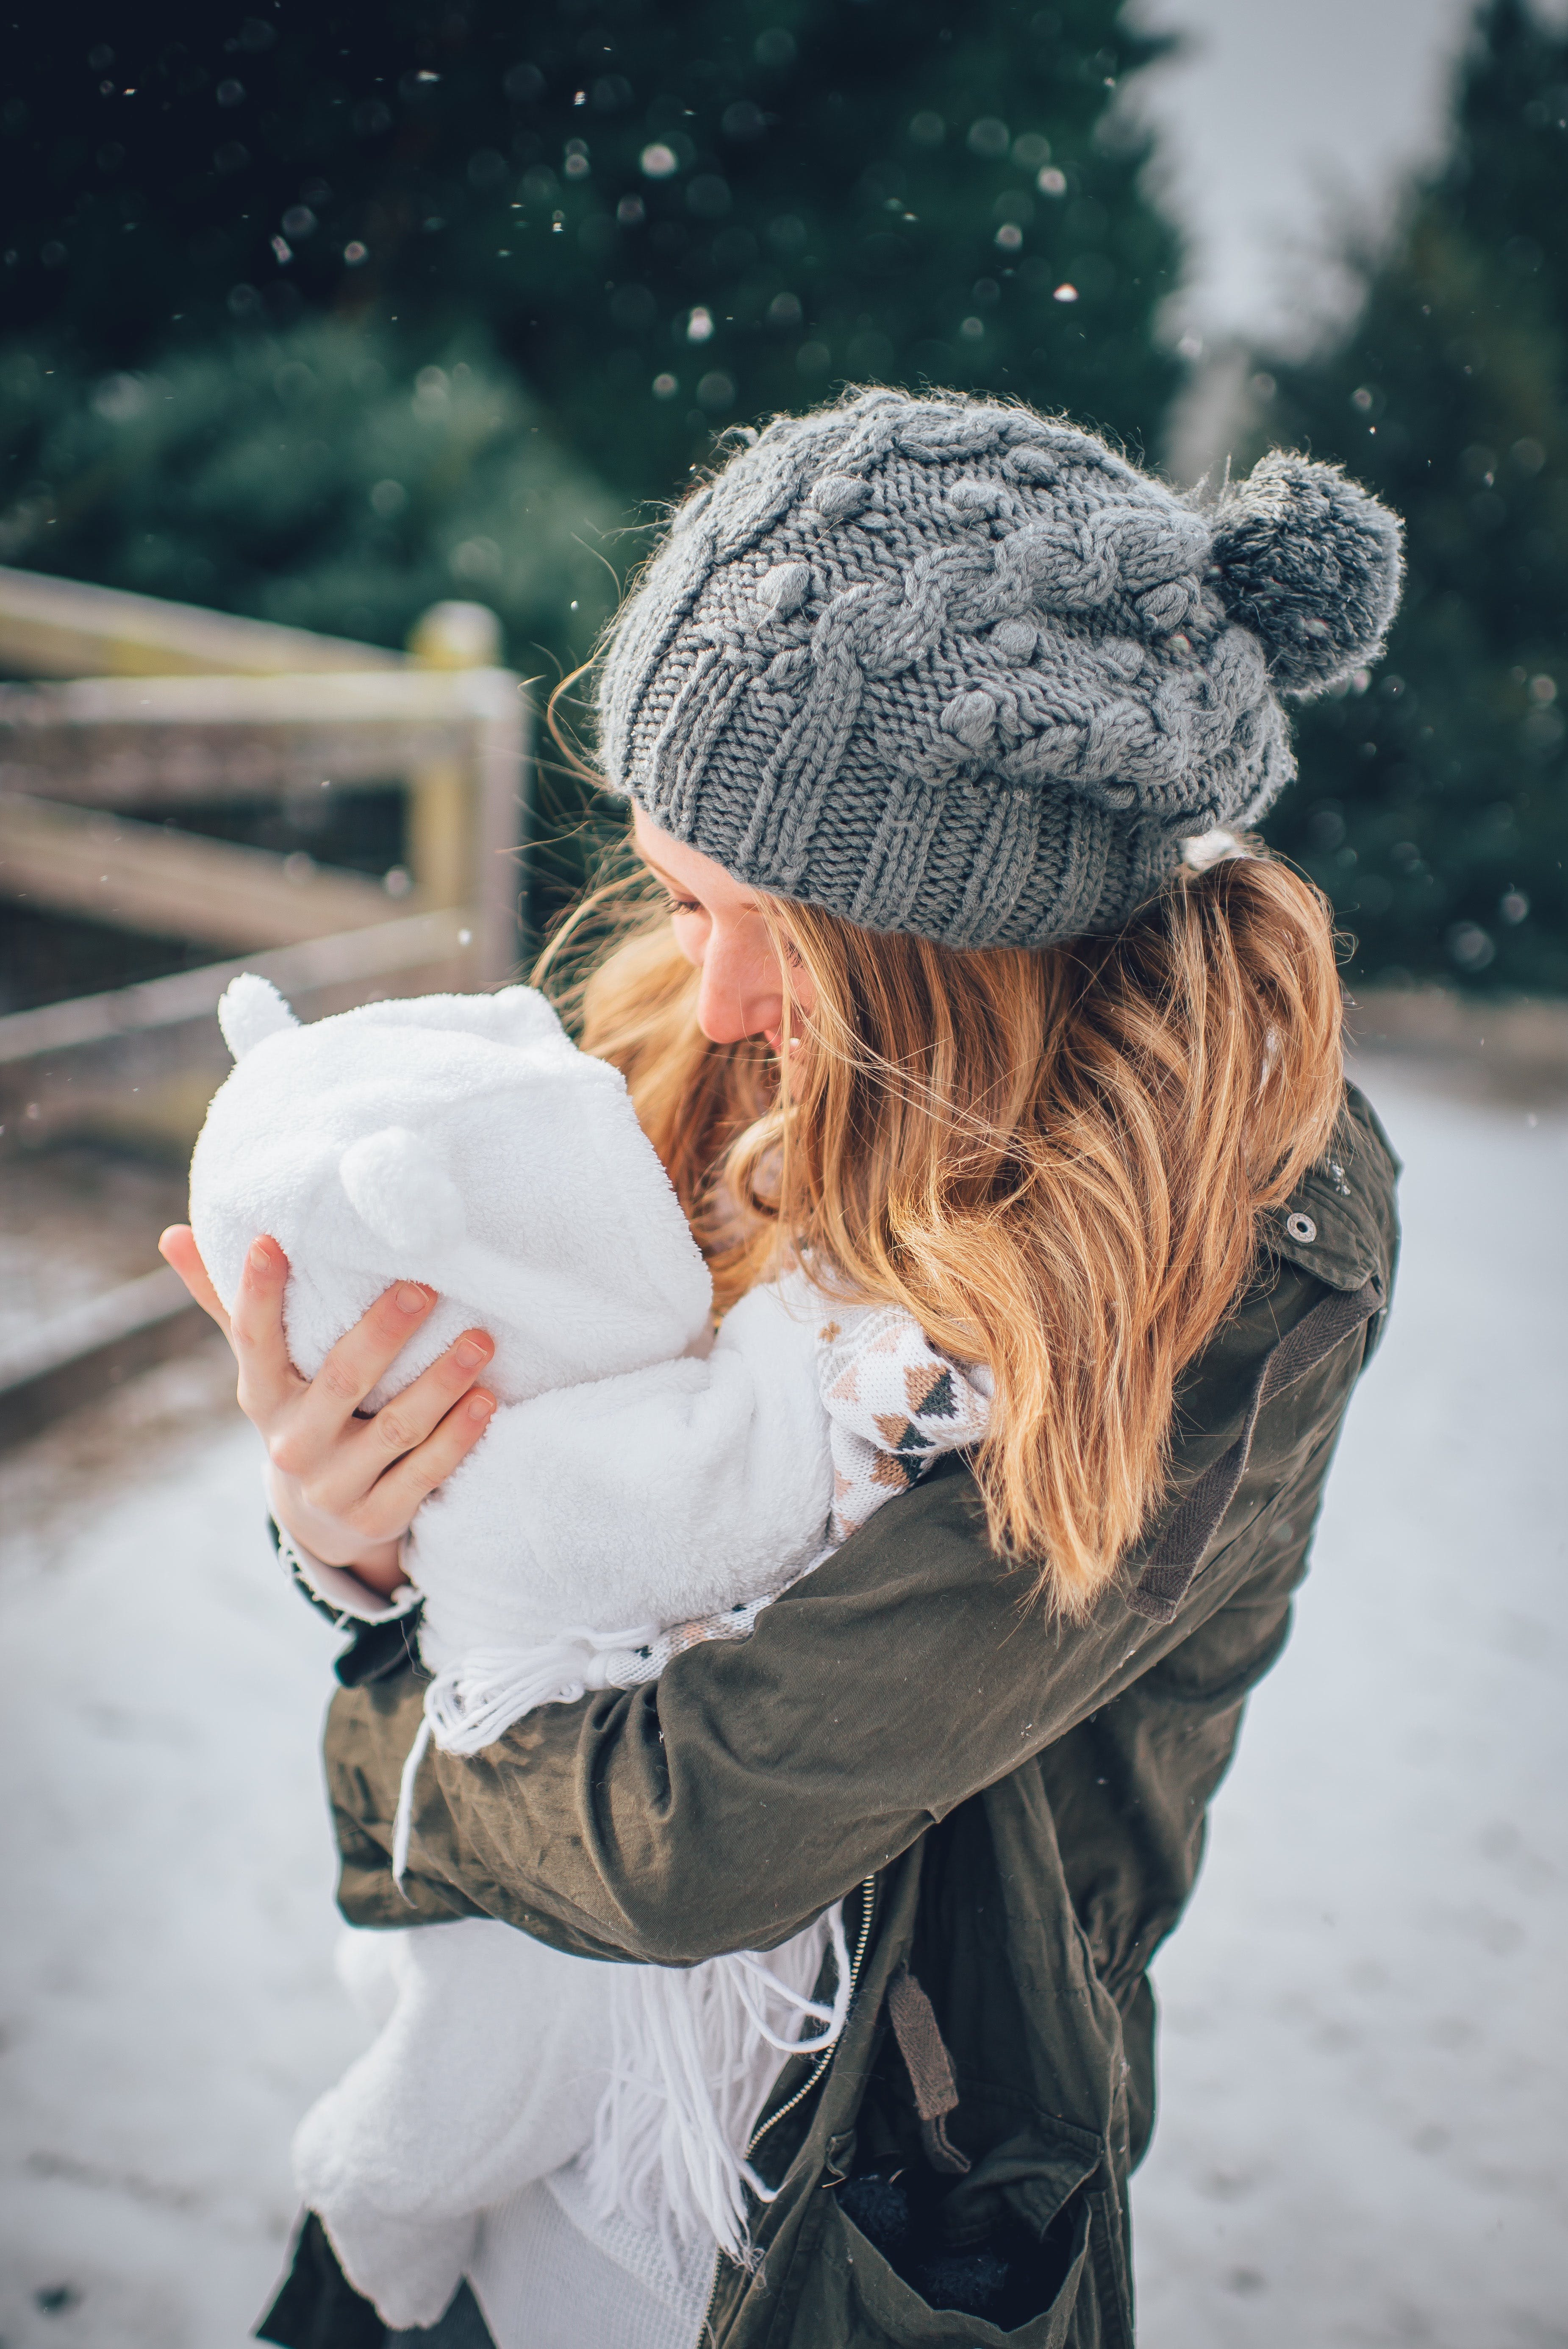 Free stock photo of baby, caucasian, cold, cuddle